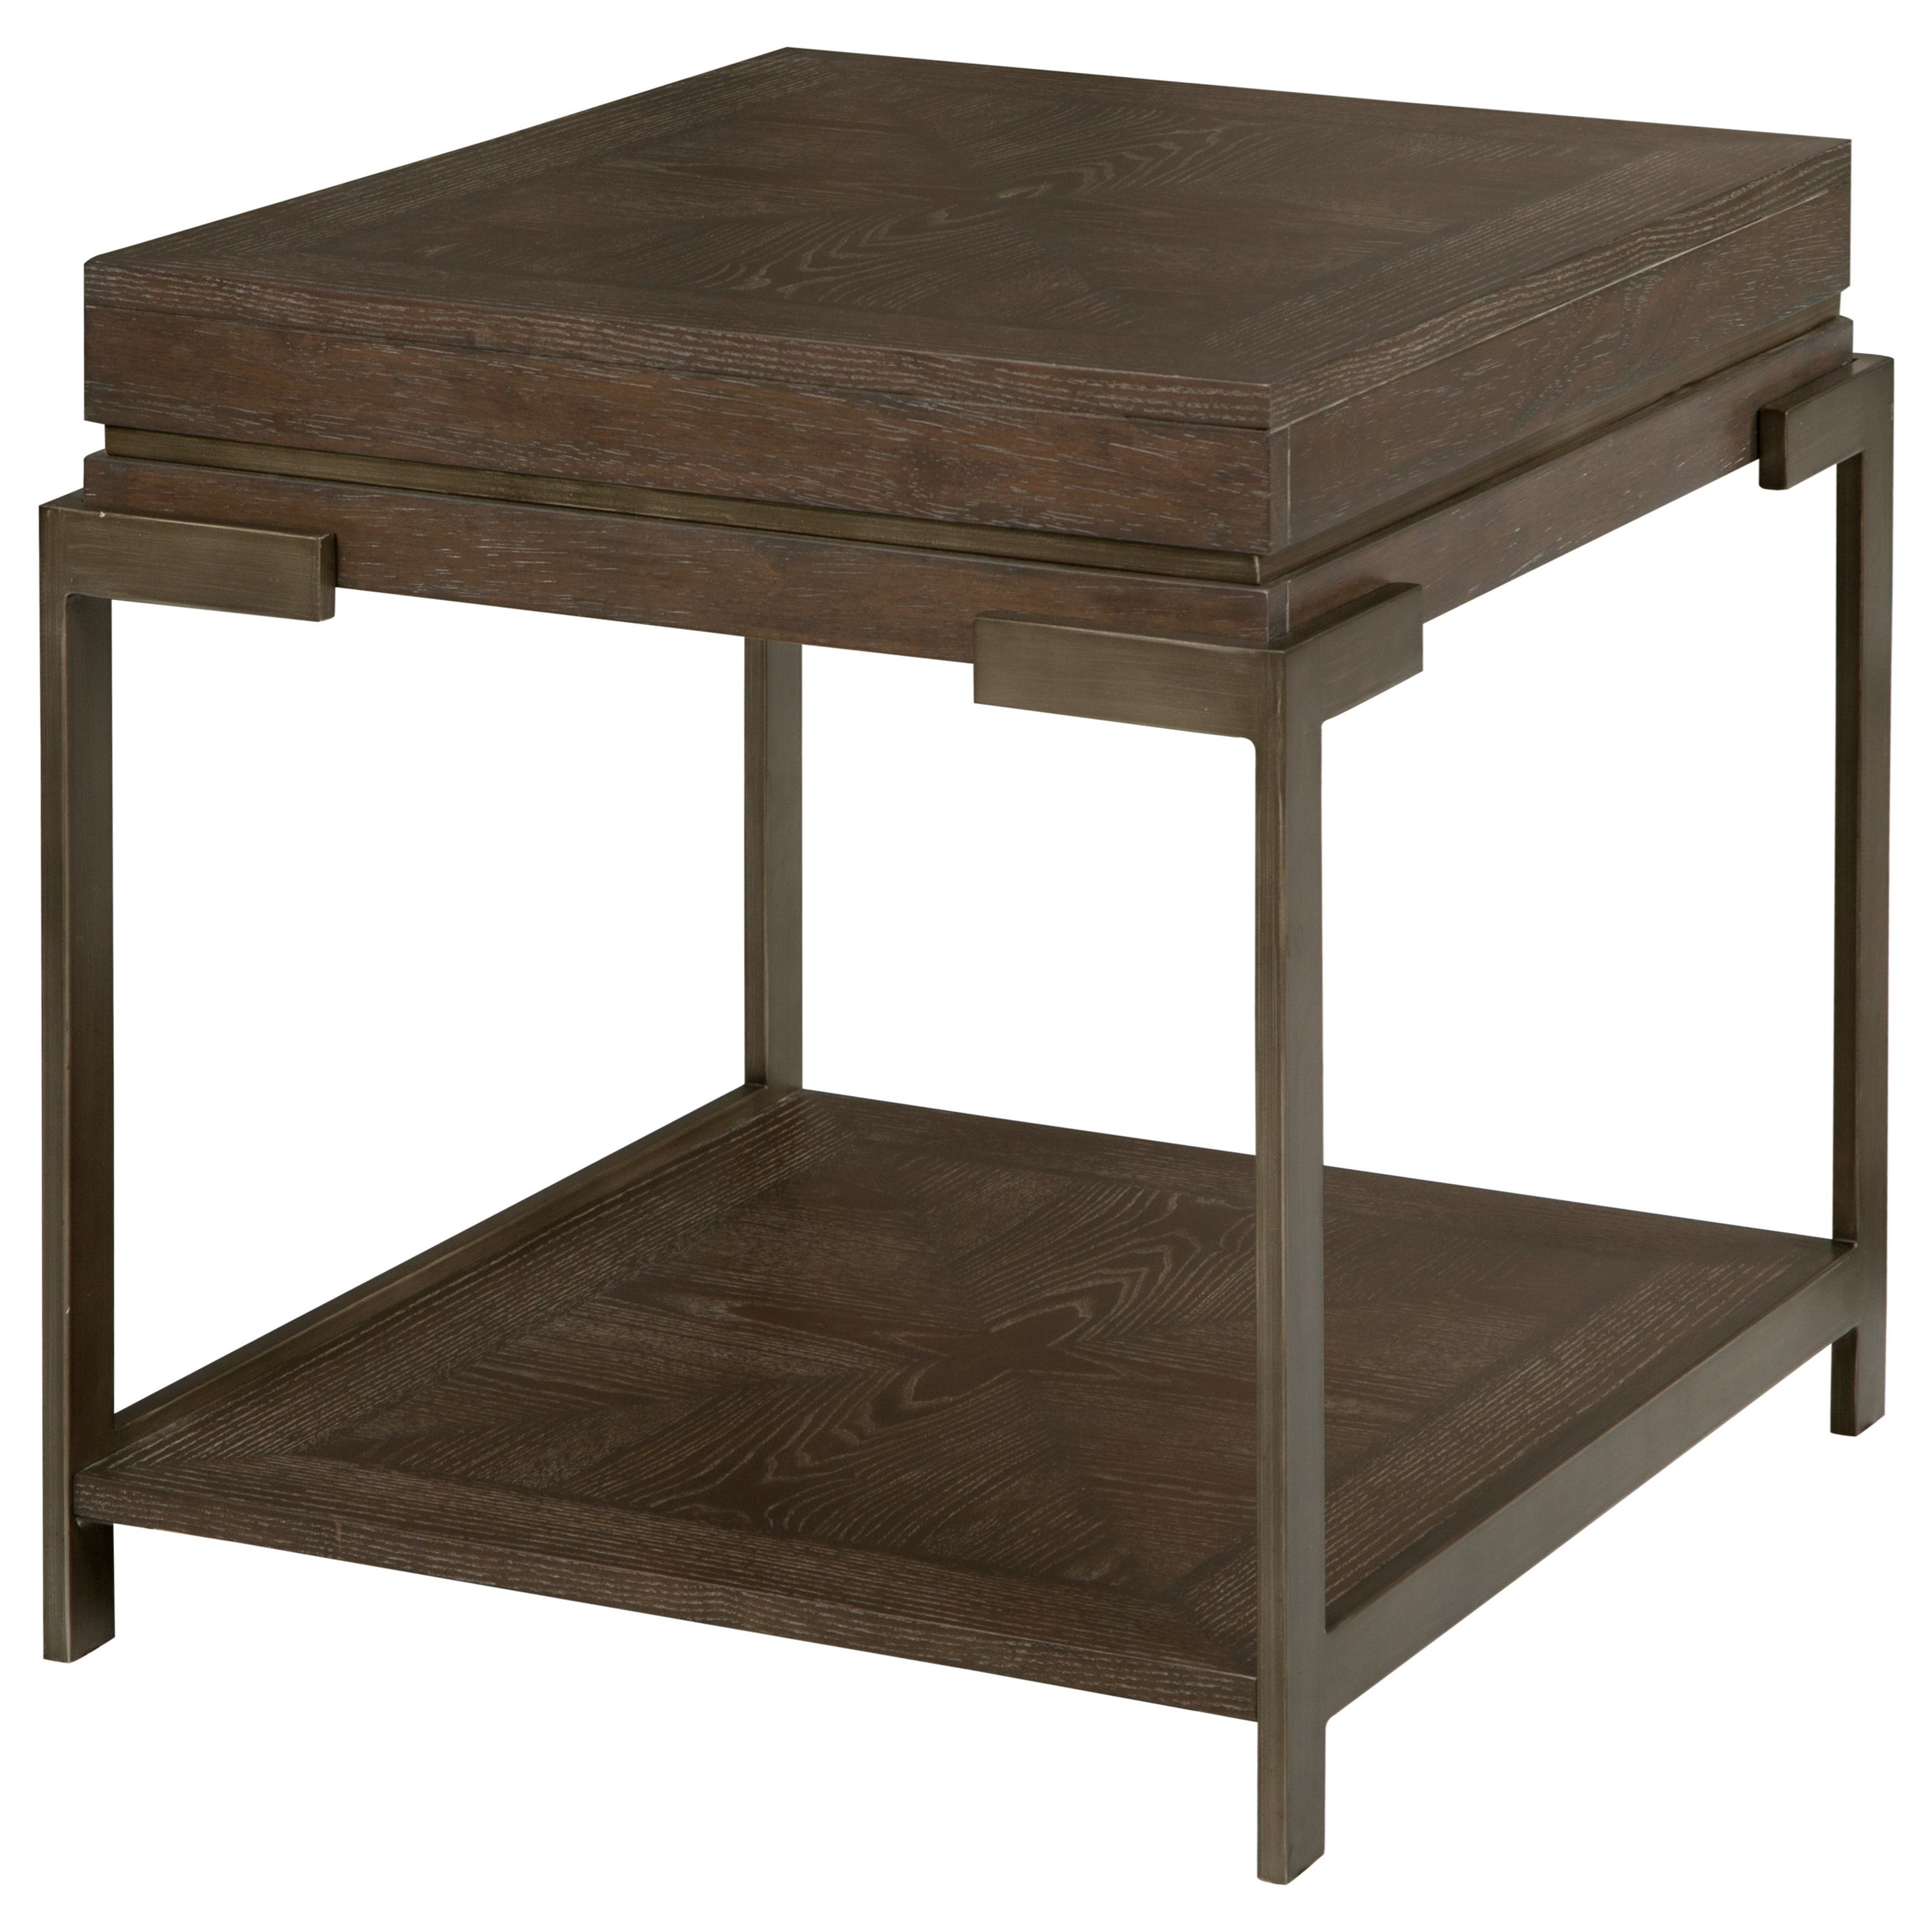 Industrial Rectangular End Table with Lower Shelf